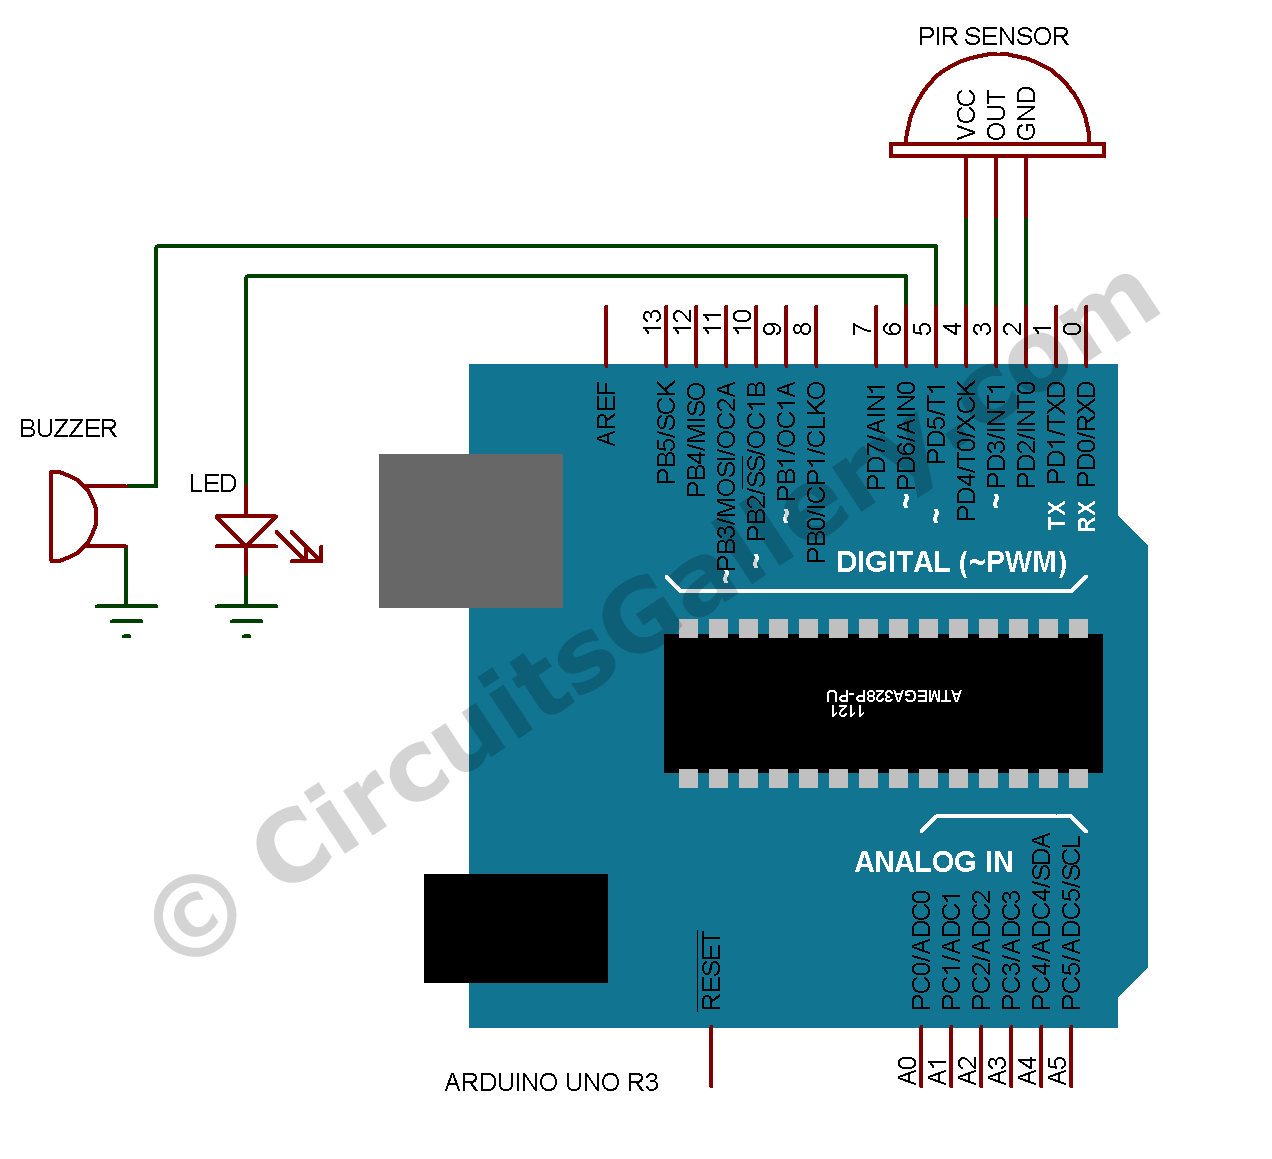 hight resolution of one of our arduino projects right here best home security system built with arduino pir motion sensor we have given pir motion sensor arduino code along